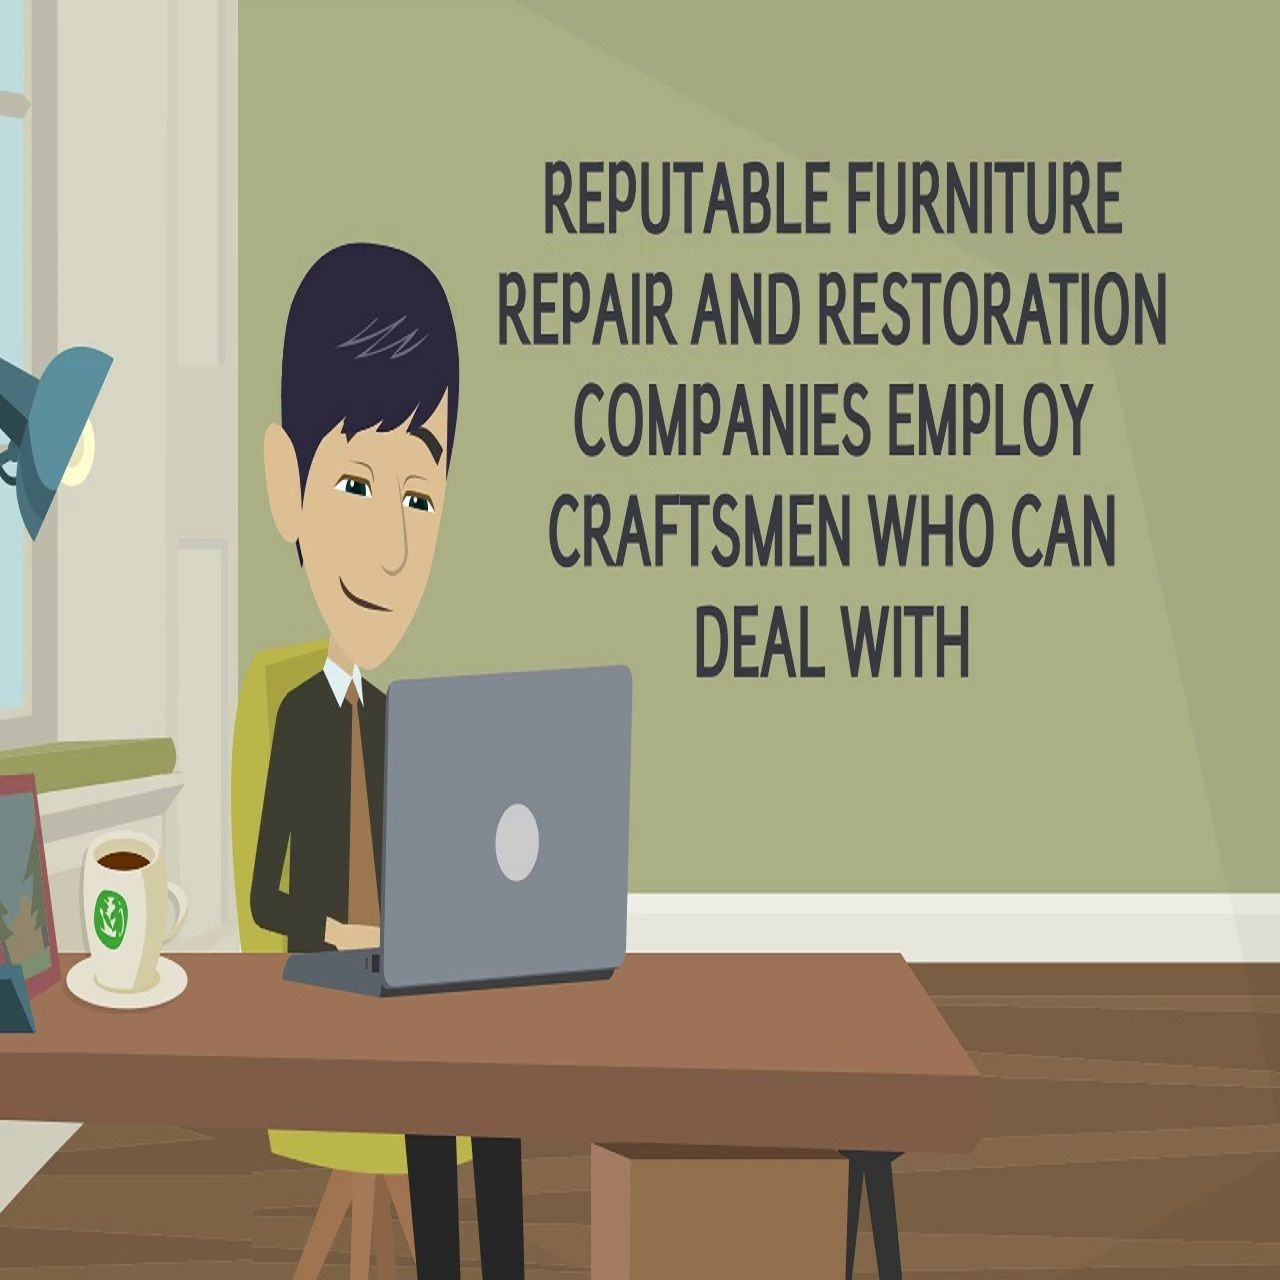 Why Experts Recommend Furniture Repair By Freyja Rivers On Genially